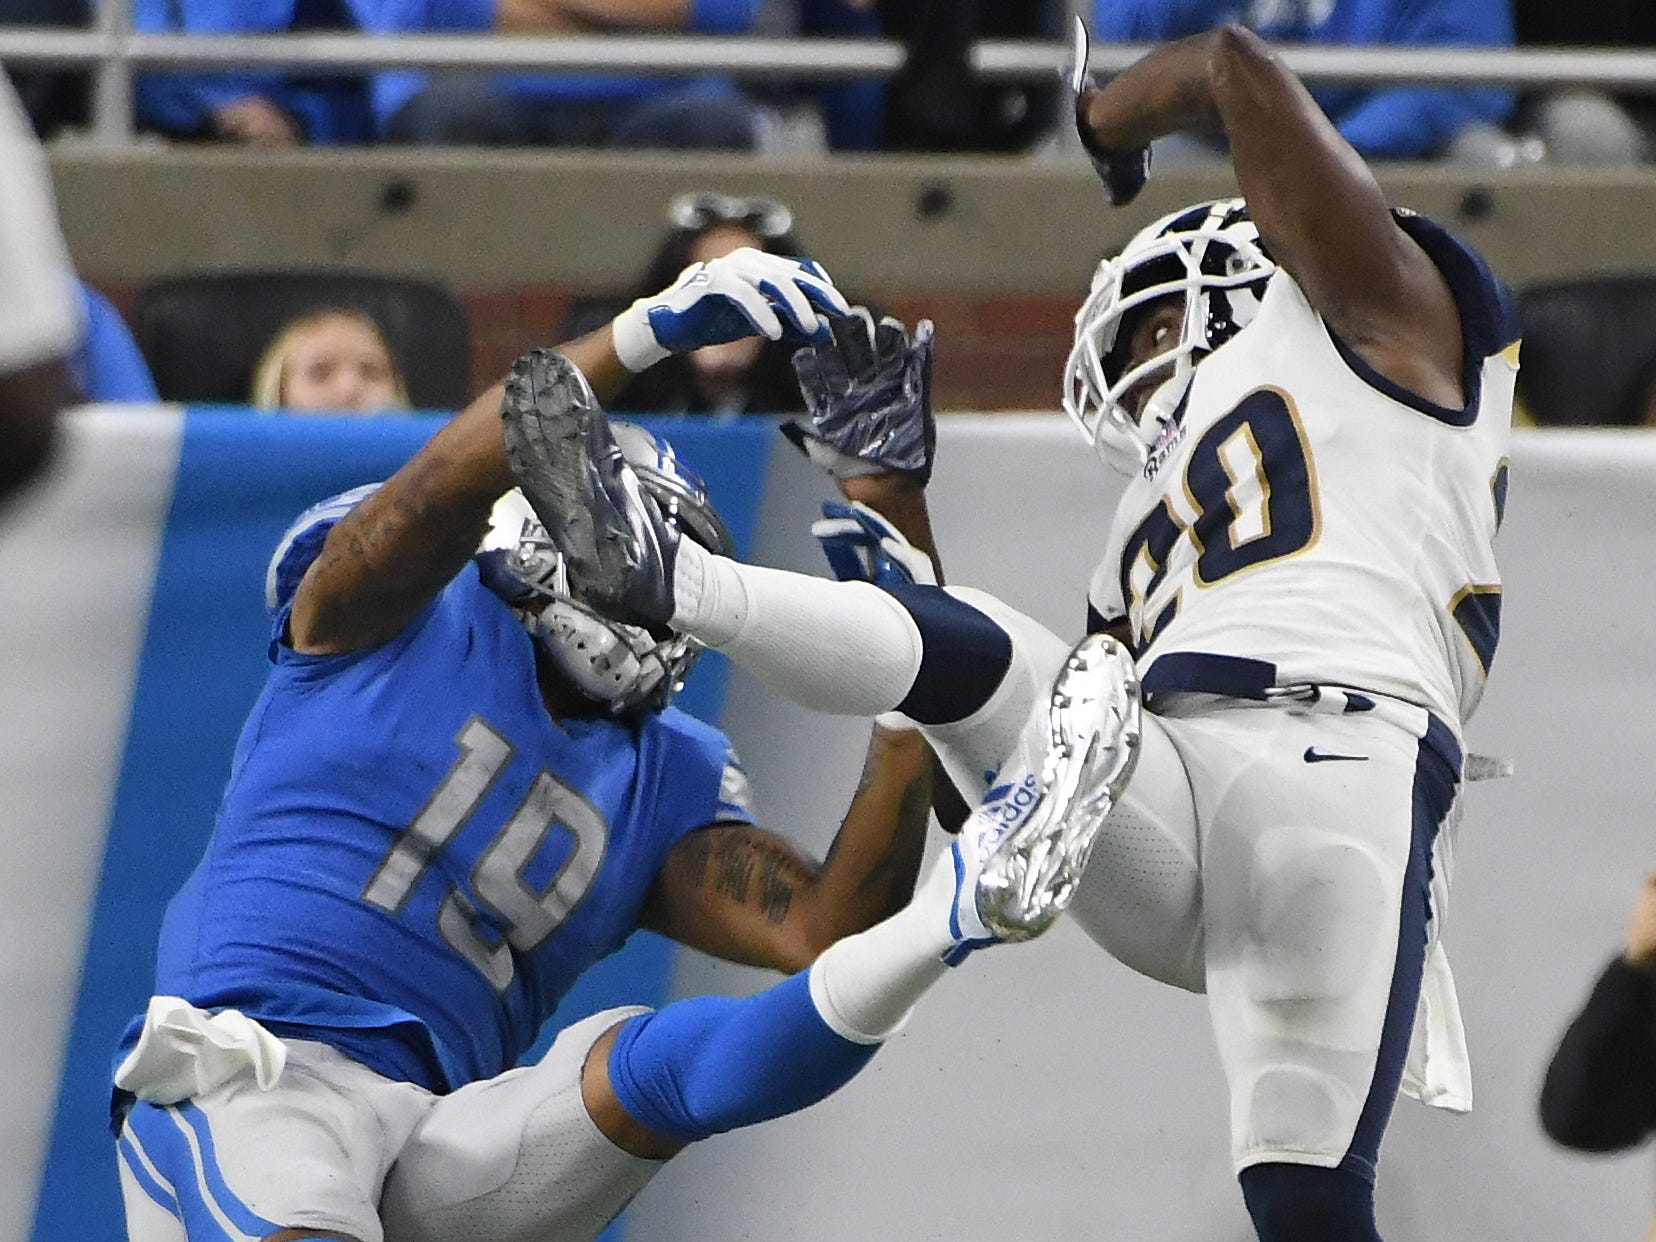 The Rams' Marcus Peters is called for pass interference on a pass intended for the Lions' Kenny Golladay in the fourth quarter.